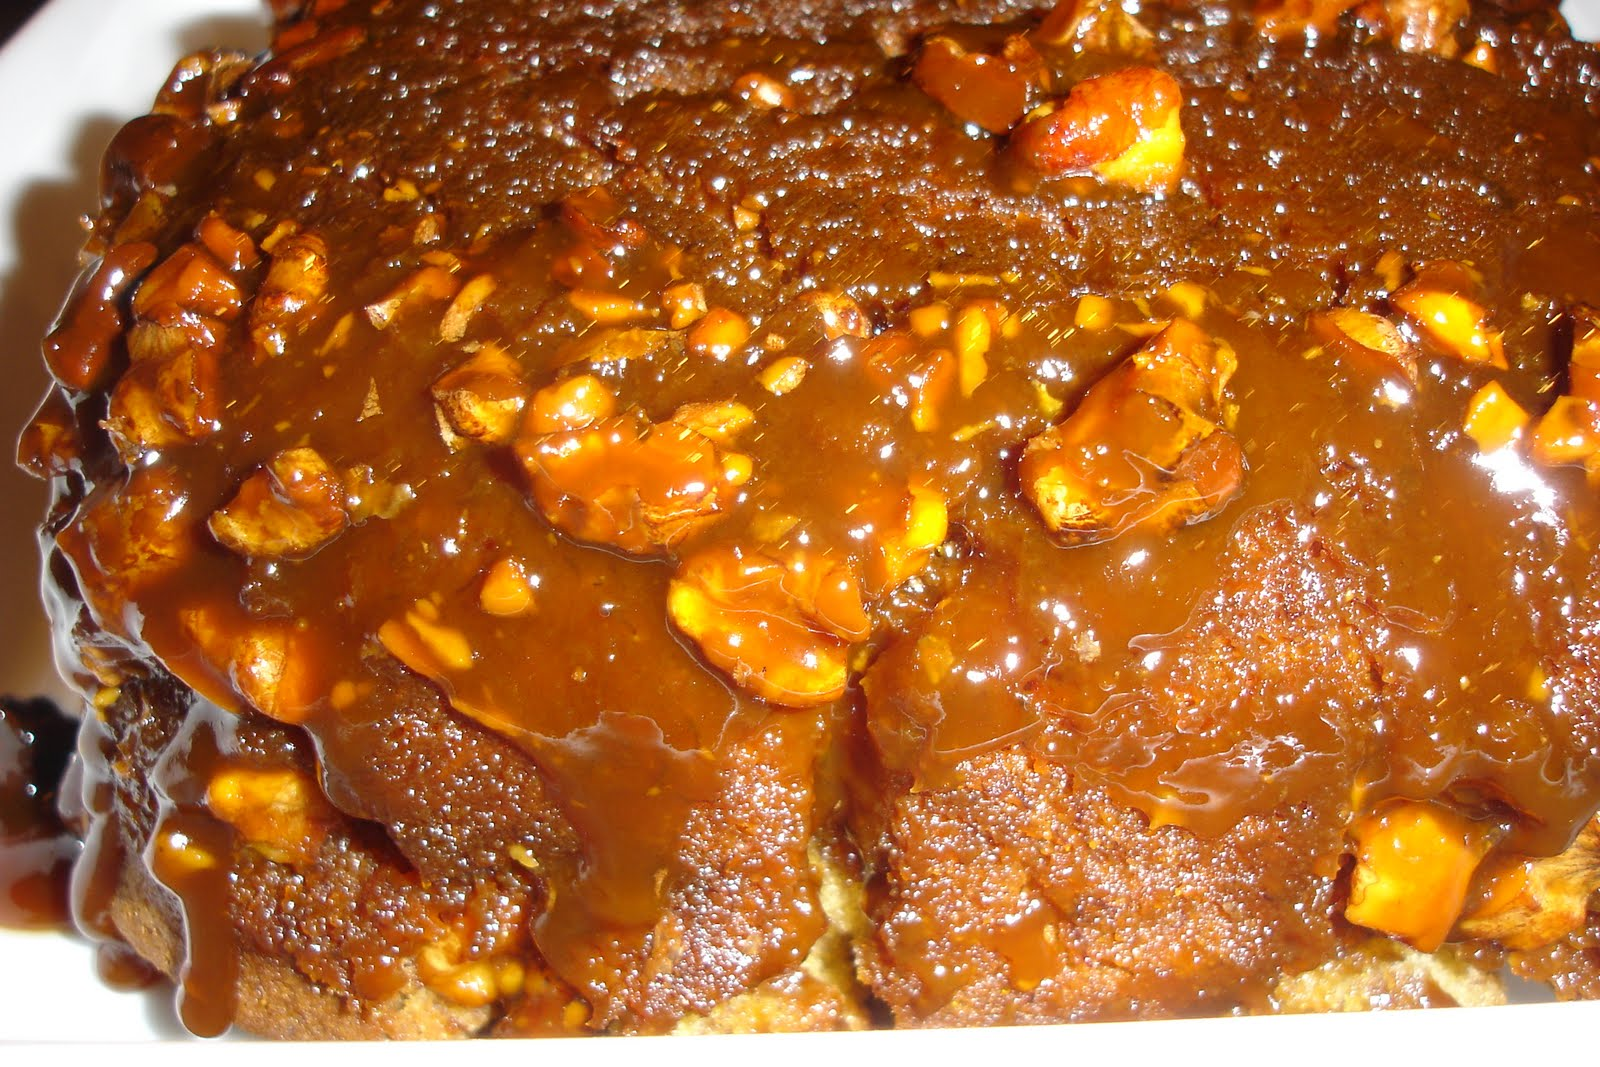 ... cake for baketogether caramel banana cake upside down banana coffee